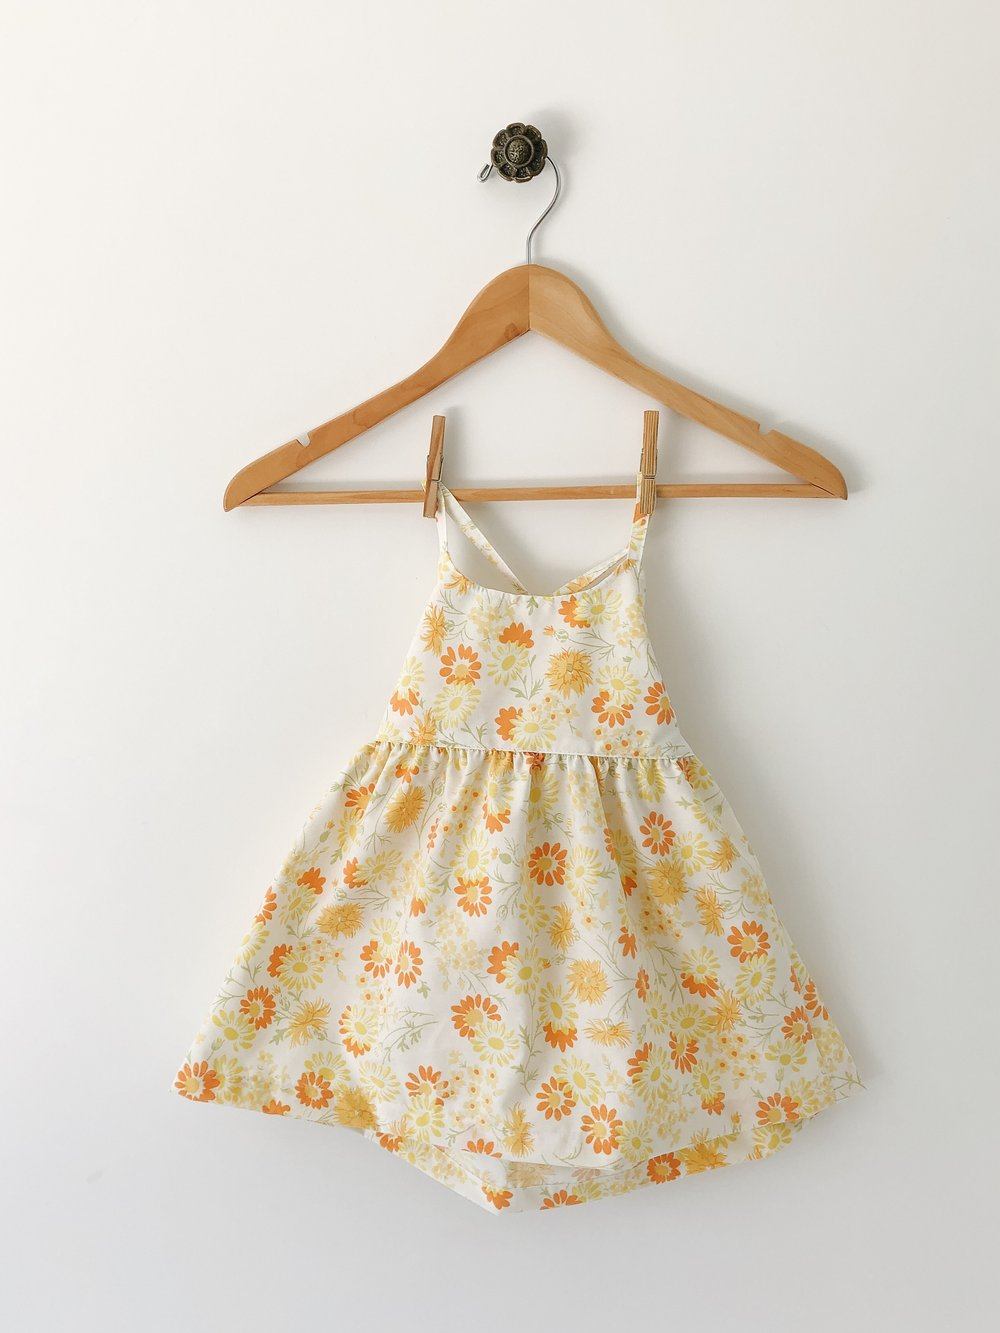 - This is the cutest dress for toddlers. This shop has a lot of really unique finds!